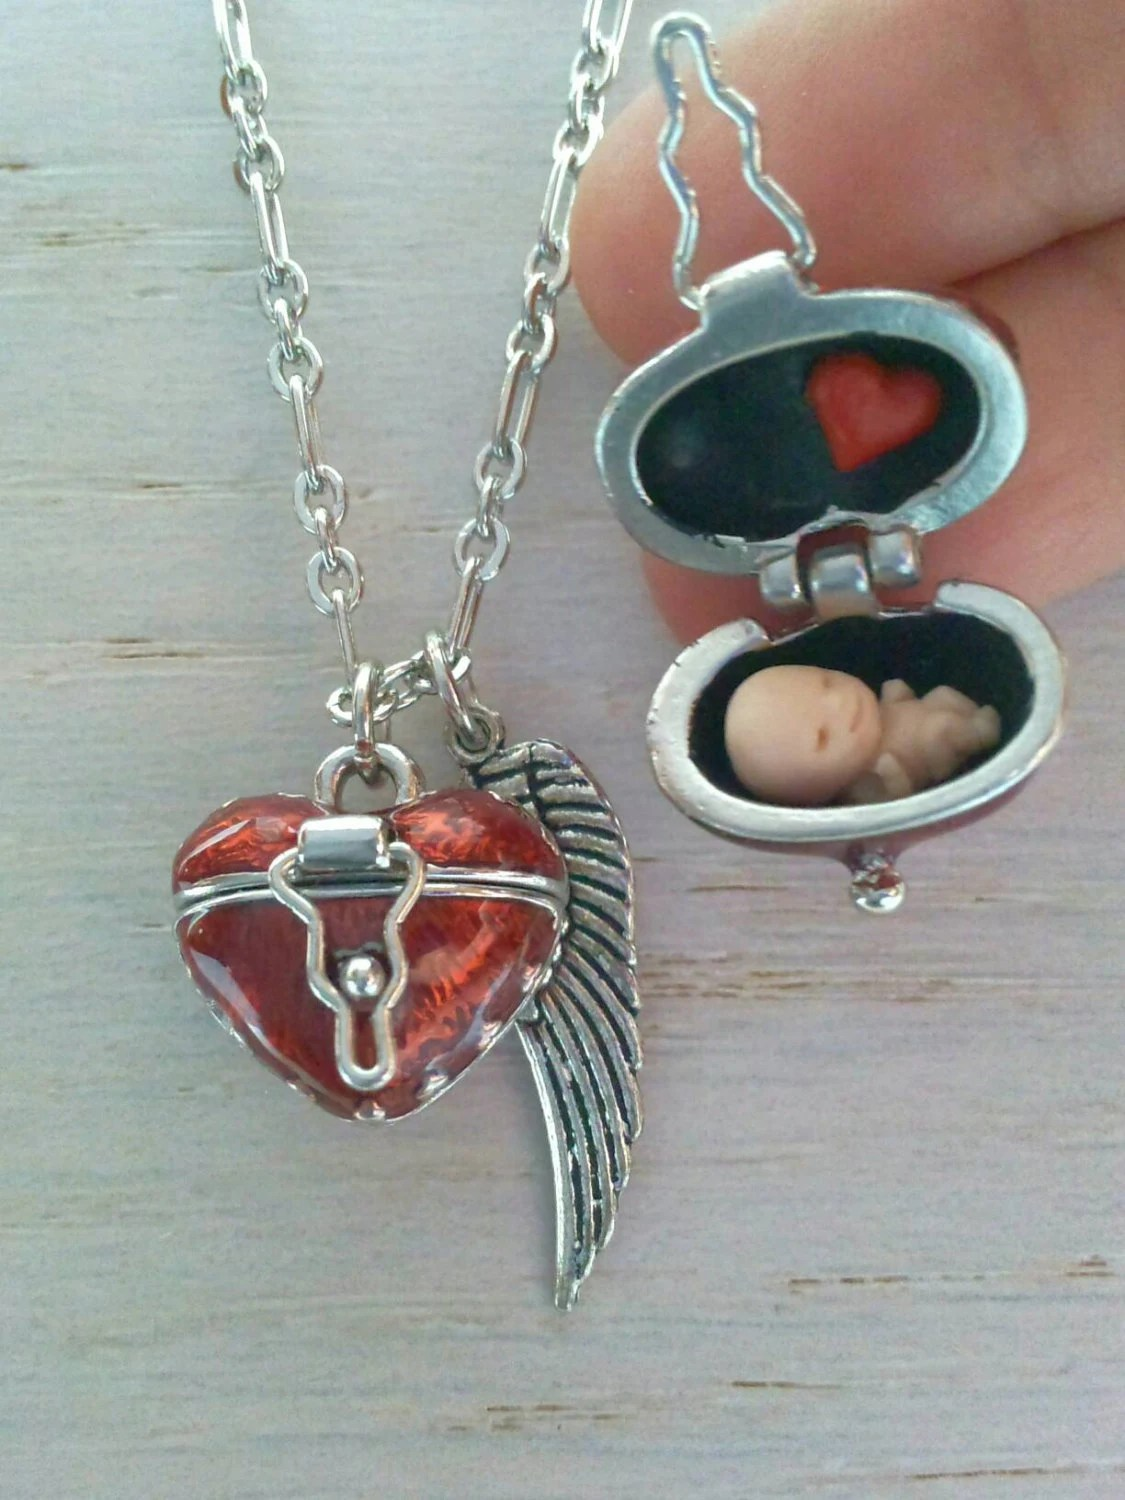 Miscarriage Memorial Jewelry : miscarriage, memorial, jewelry, Miscarriage, Necklace, Memorial, Locket